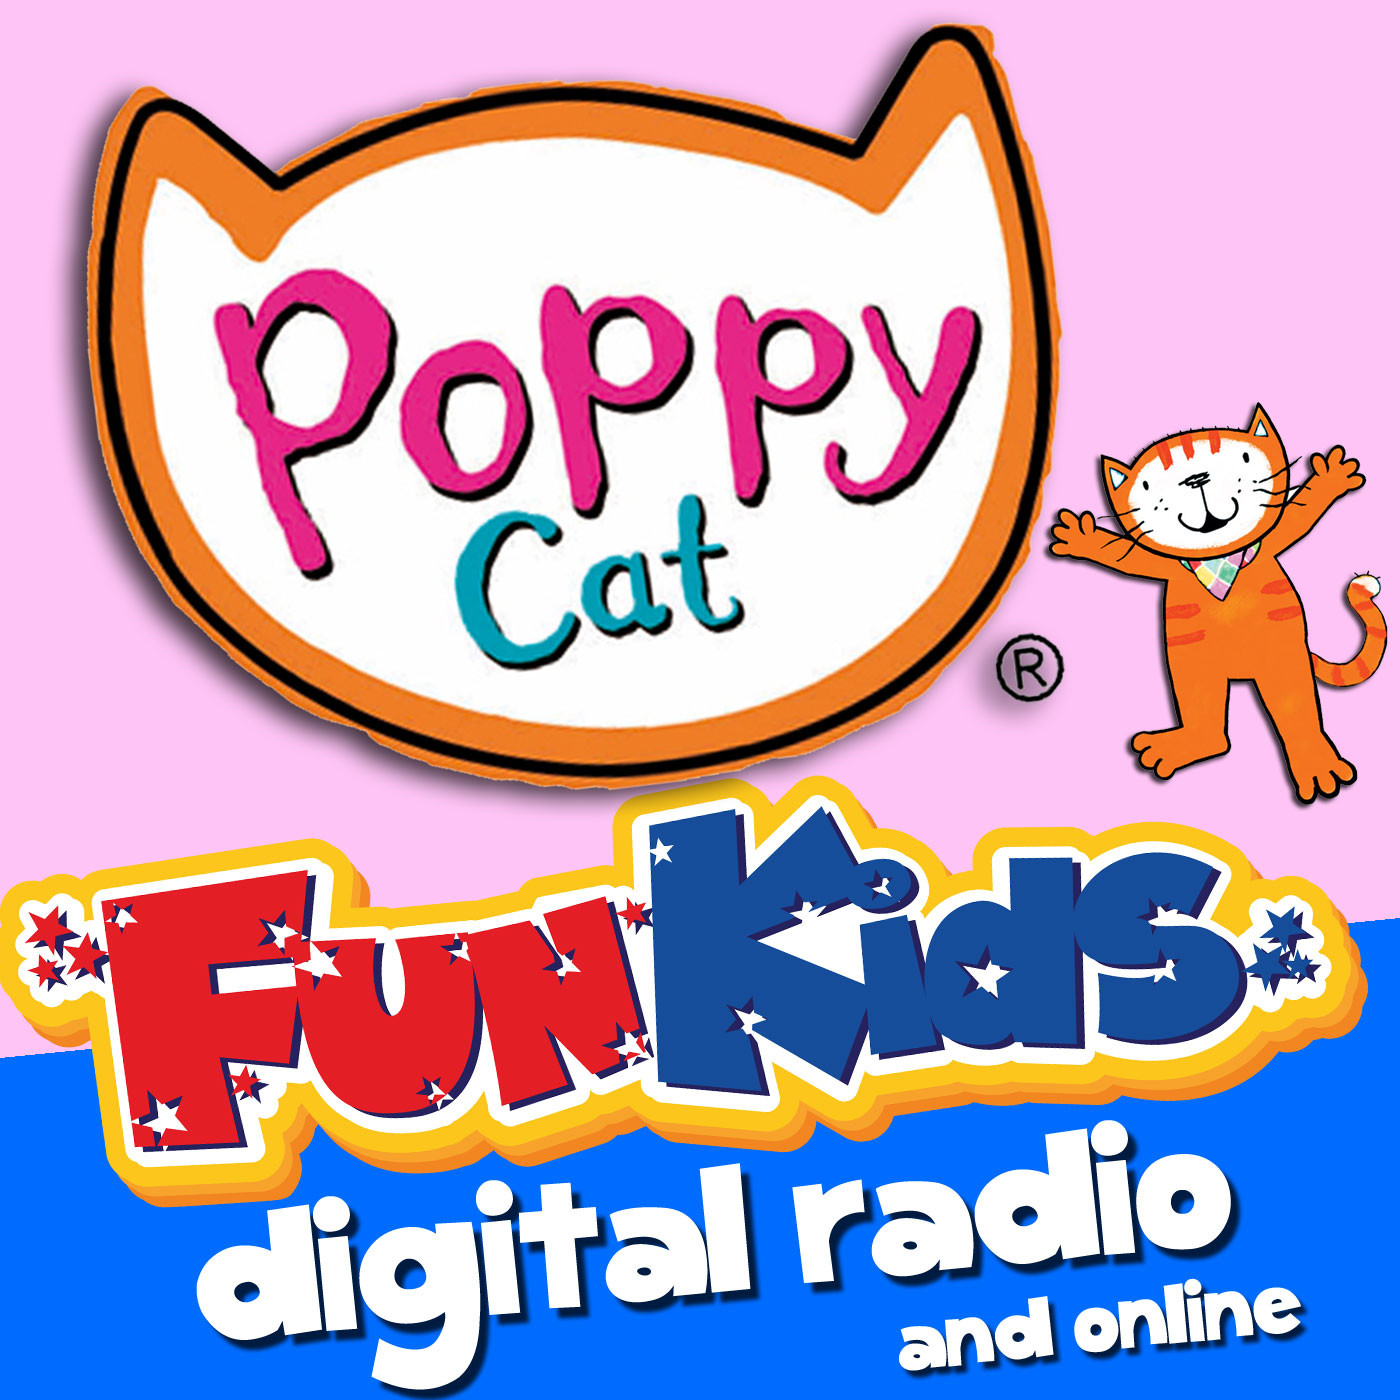 Poppy Cat on Fun Kids